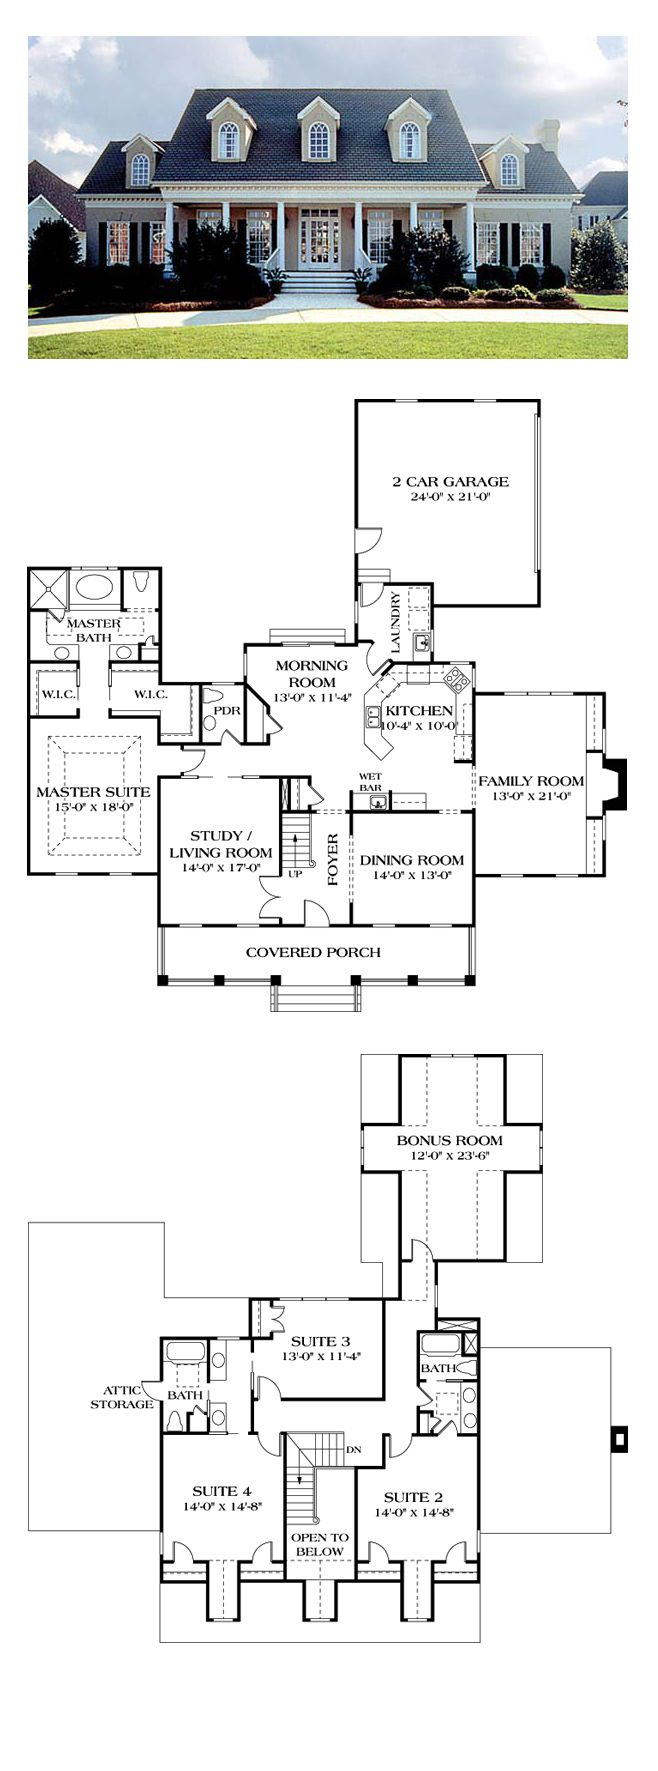 Colonial House Plan 85454 | Total Living Area: 3338 sq. ft., 4 bedrooms and 3.5 bathrooms. The floor plan is completely up-to-date beginning with an open entry foyer flanked by the formal living room and dining room. The master suite offers dual walk-in closets as well as a trayed ceiling in the bedroom. #houseplan #colonialhome